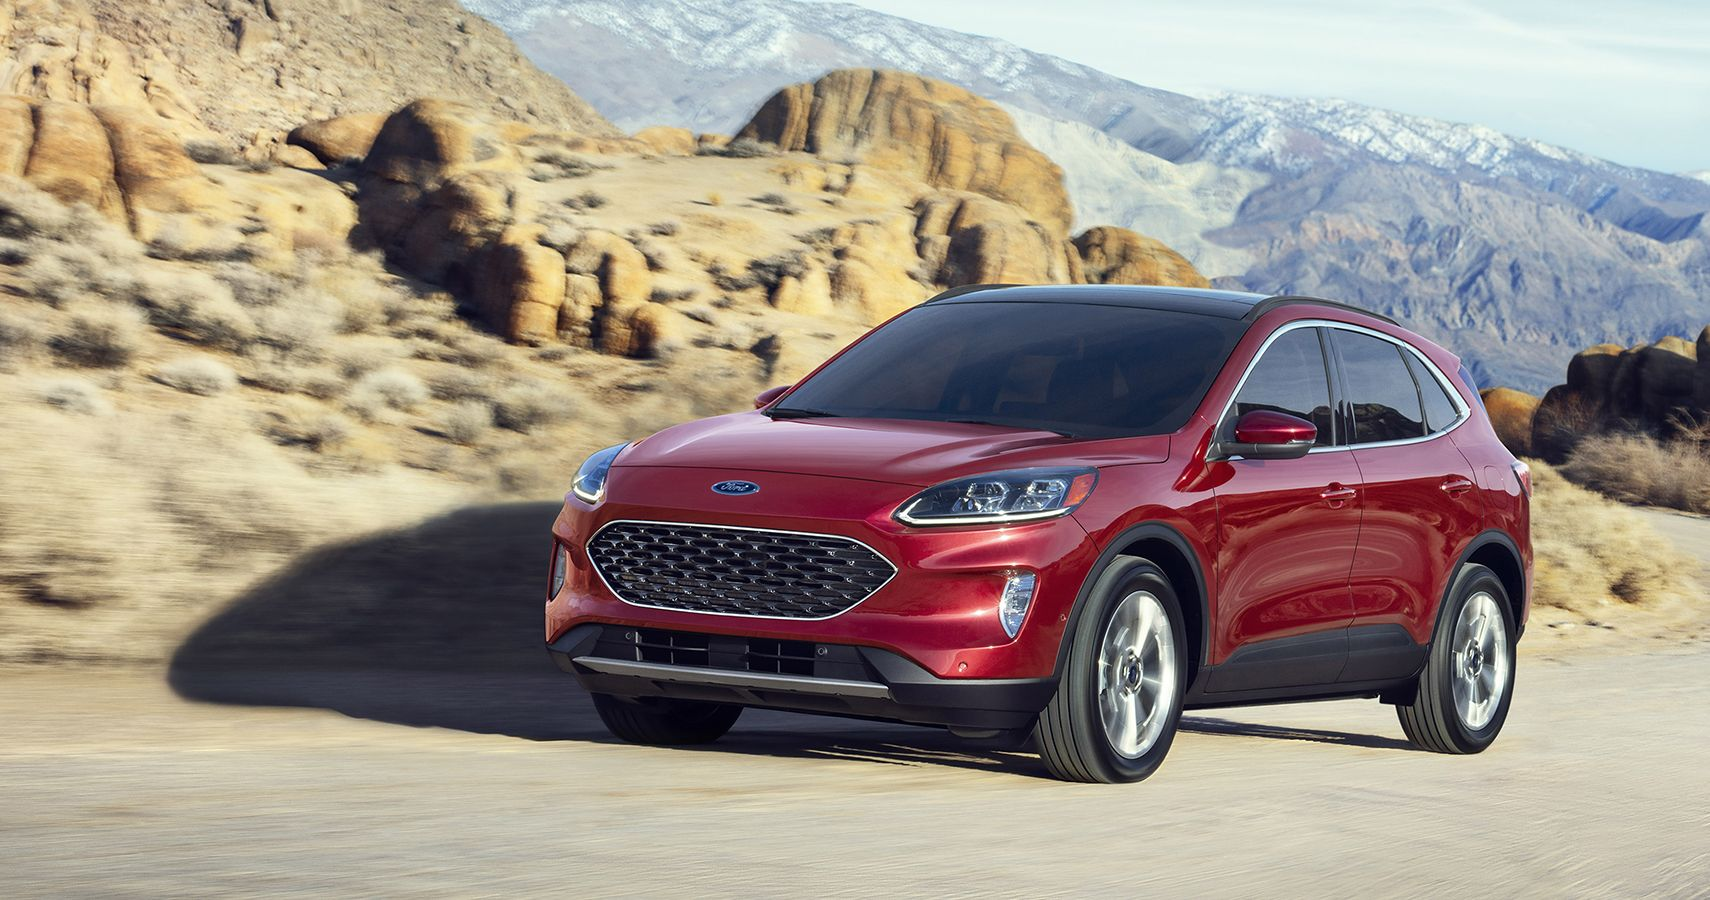 2020 Ford Escape Hybrid Leads Small Suv Class In Epa Mpg